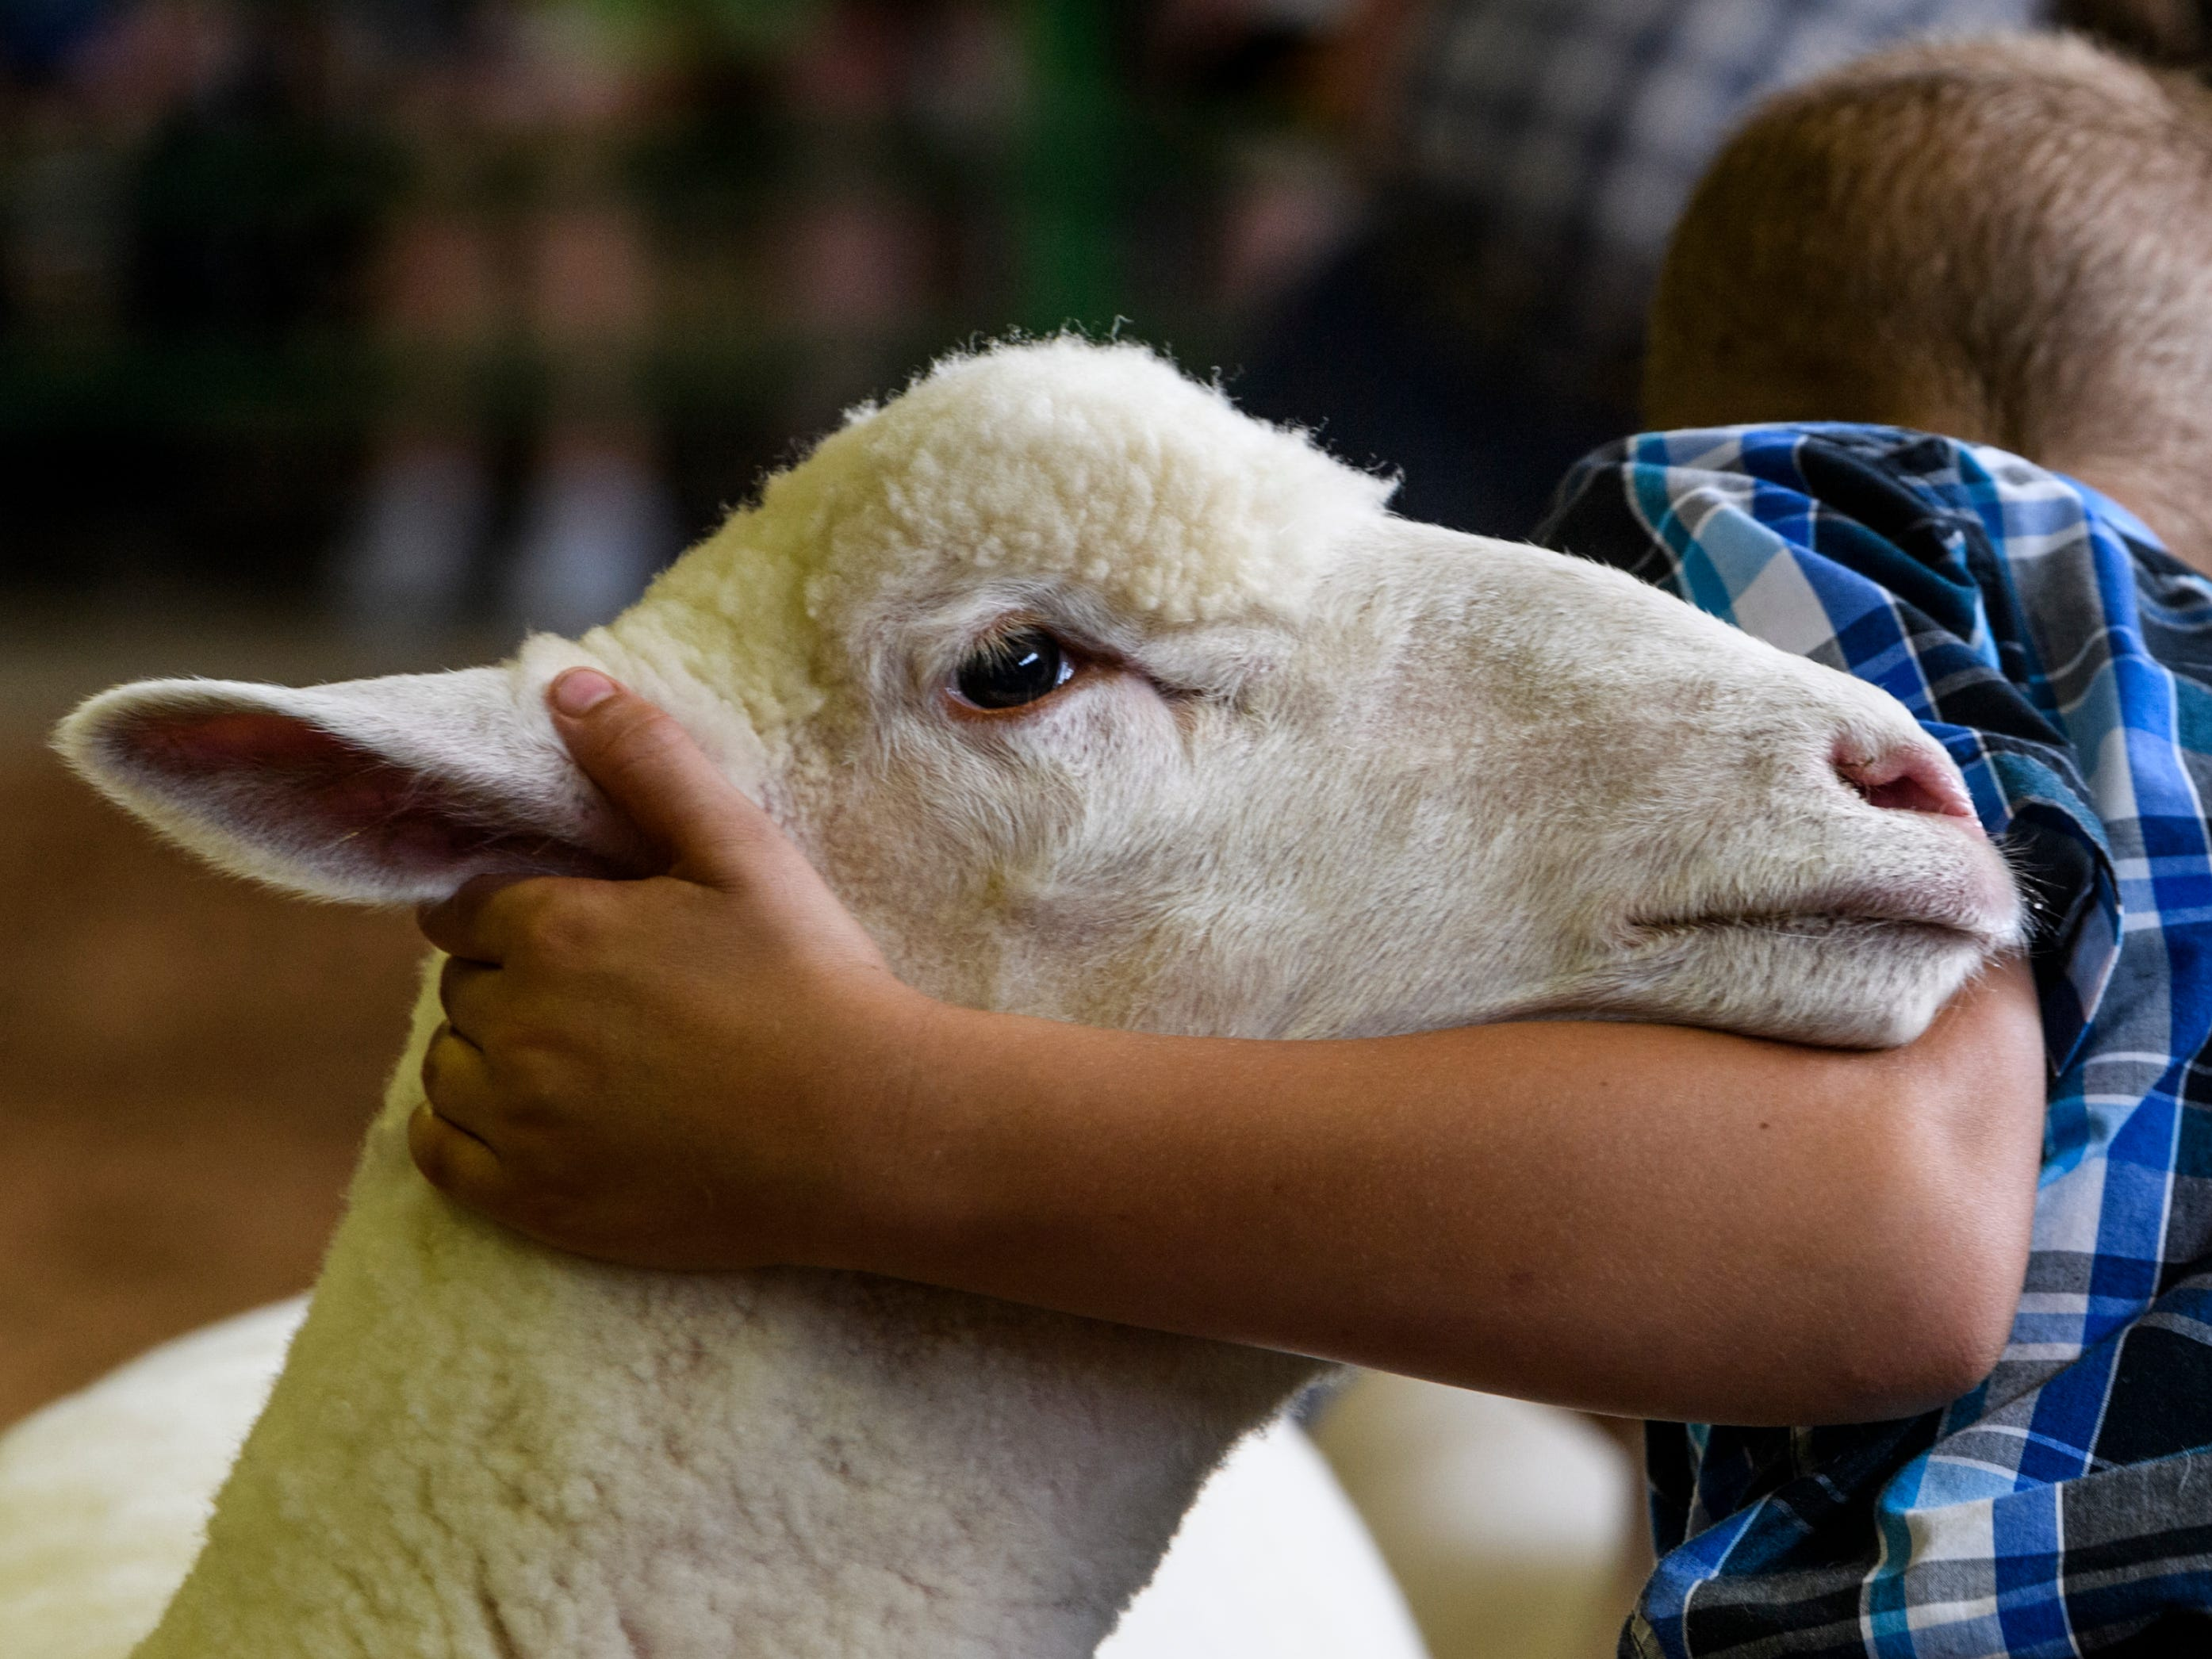 Dallas Bergman straightens out the stance of his Dorset ewe lamb as the judge surveys a line of exhibitors during the 4-H Sheep show inside the Livestock Barn at the Vanderburgh County Fair, Thursday afternoon, July 26, 2018.